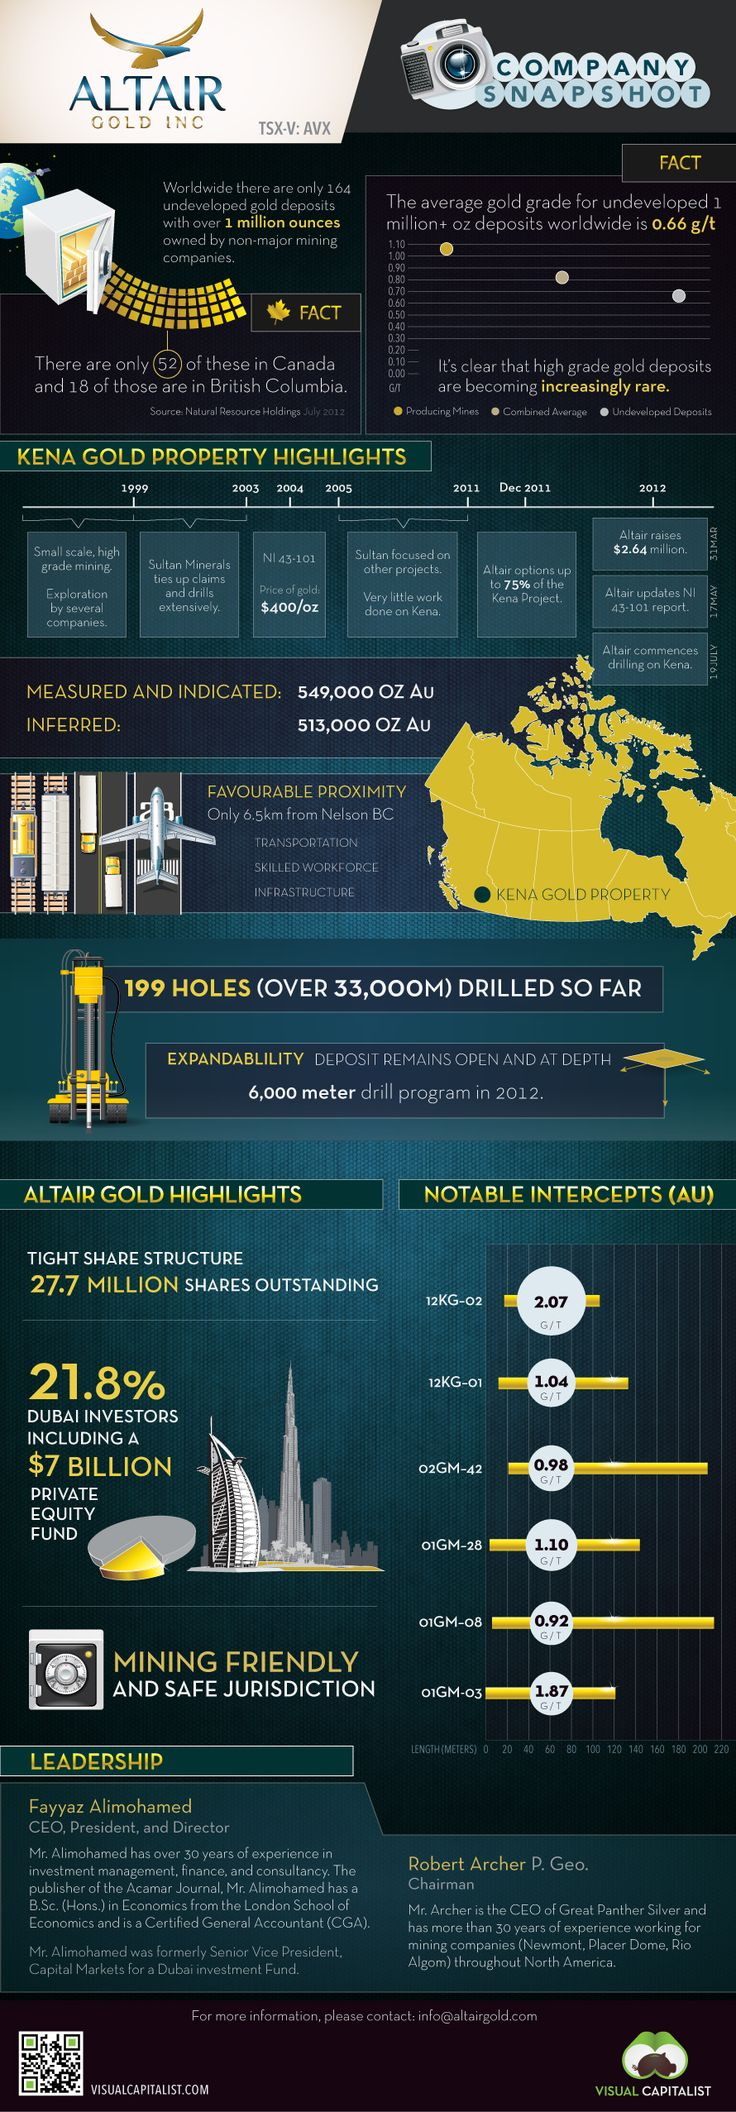 Altair Gold Company Snapshot